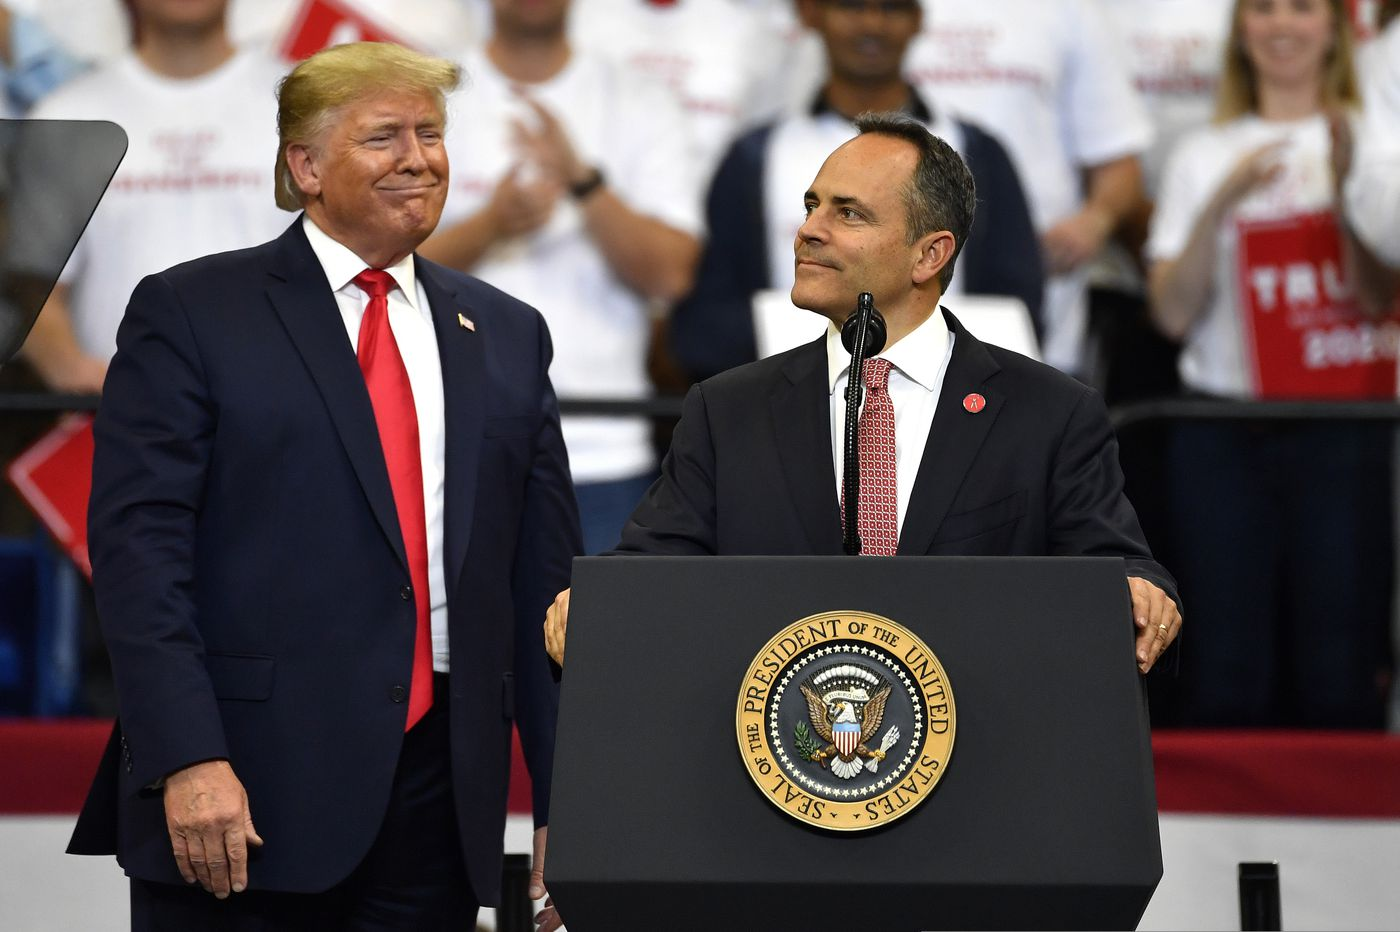 Kentucky Republicans who turned against Gov. Bevin say they still support Trump